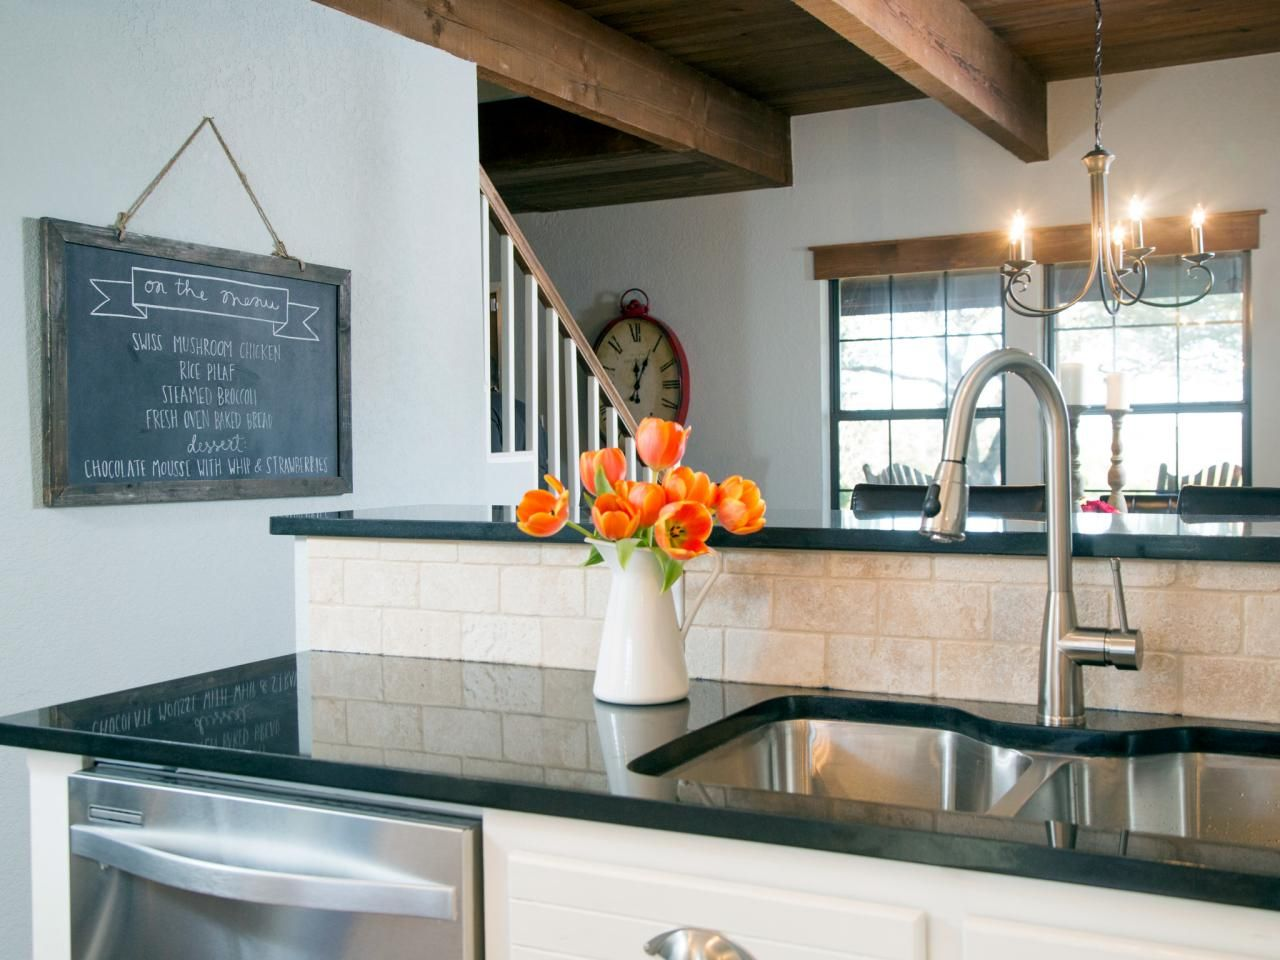 Fixer upper kitchen decor ideas - Wall Art Ideas From Chip And Joanna Gaines Fixer Upper Decorfixer Upper Kitchenchip